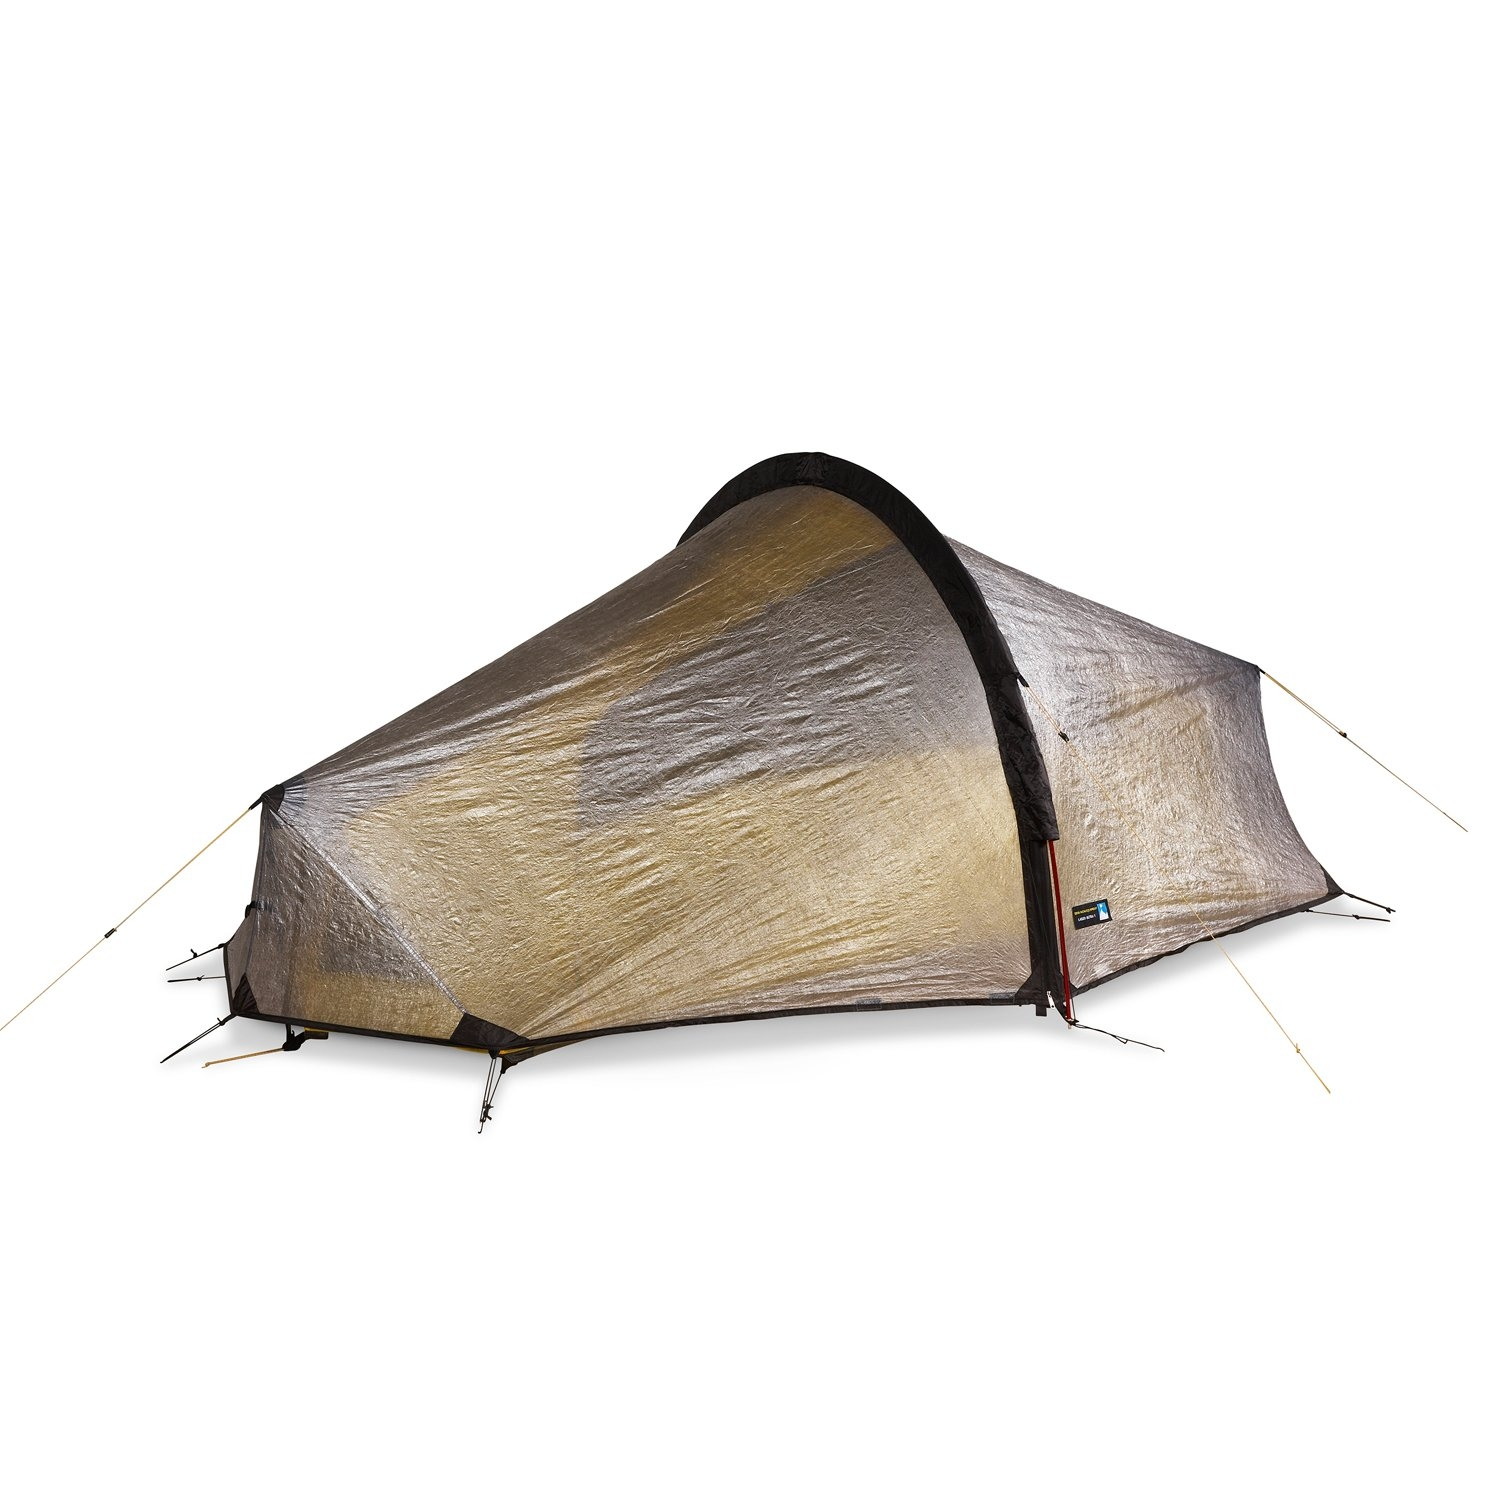 Terra Nova Laser Ultra 1 Tent  sc 1 st  Uttings & 1-2 Person Tents | Uttings.co.uk